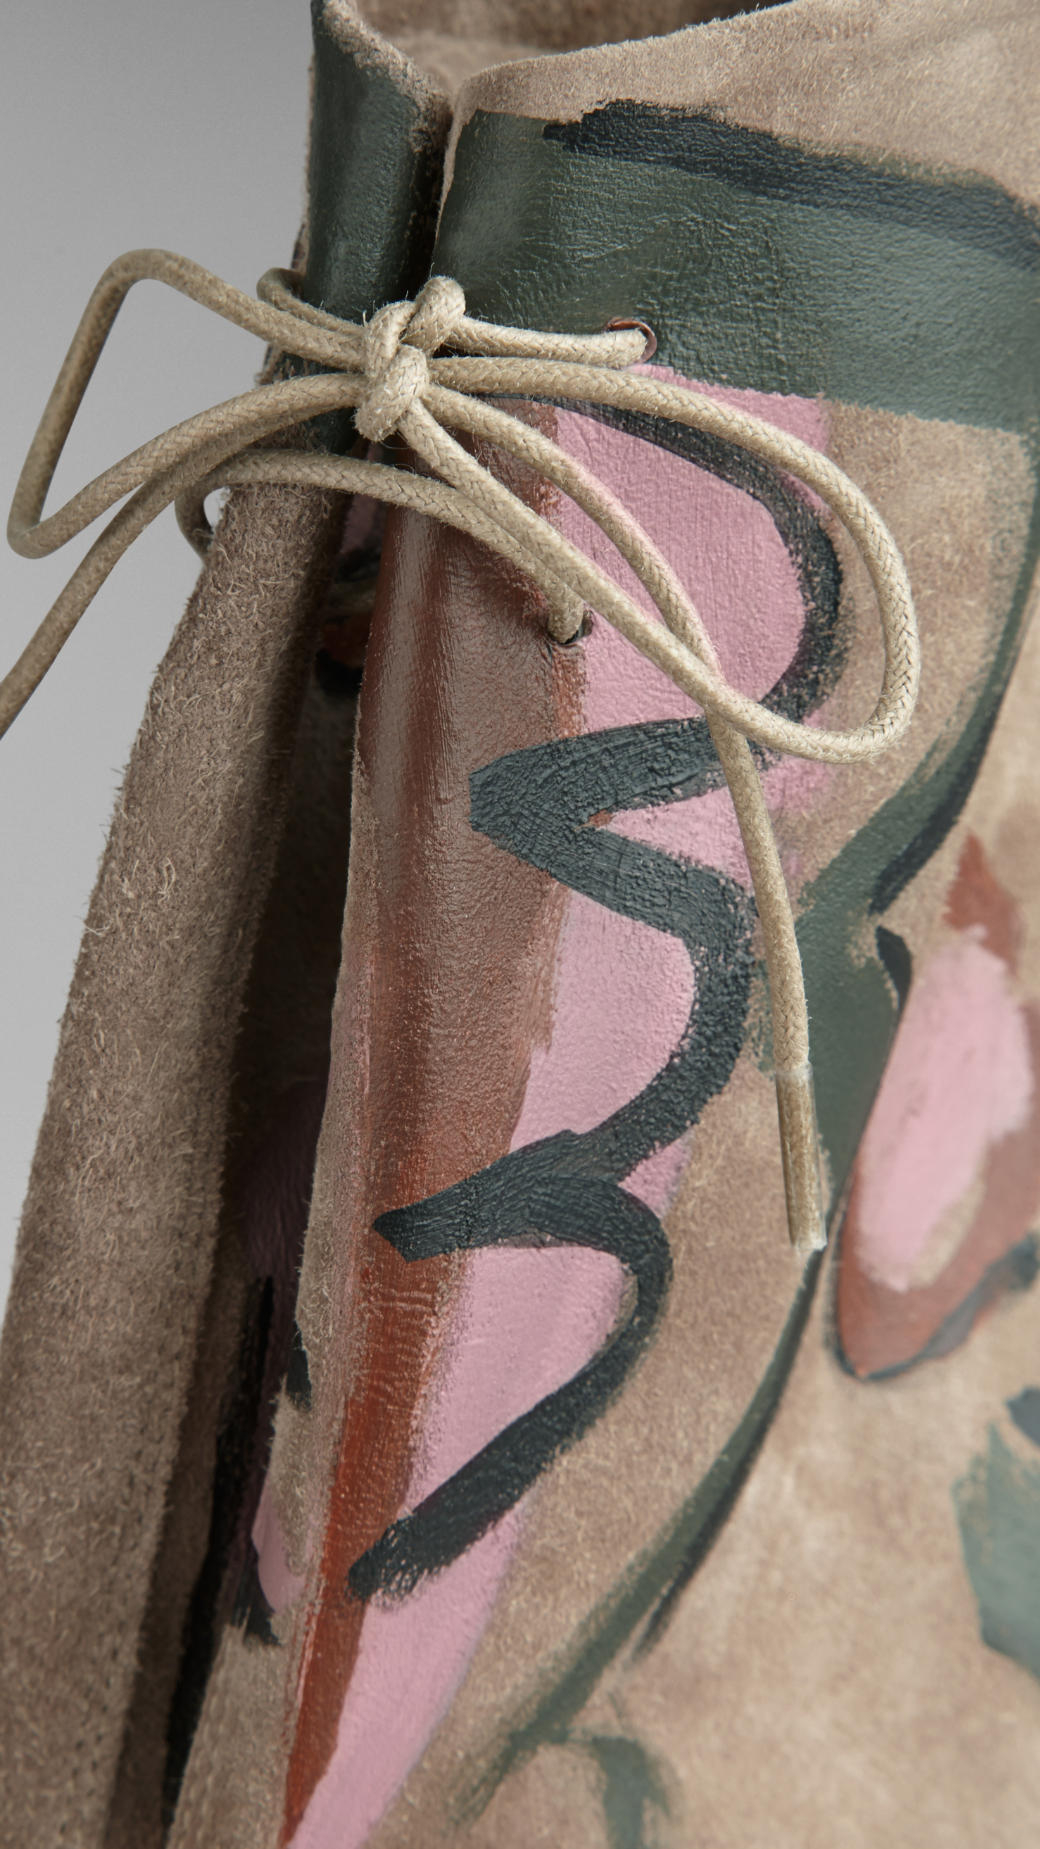 Burberry Hand-Painted Suede Ankle Boots in Light Grey Melange (Grey)